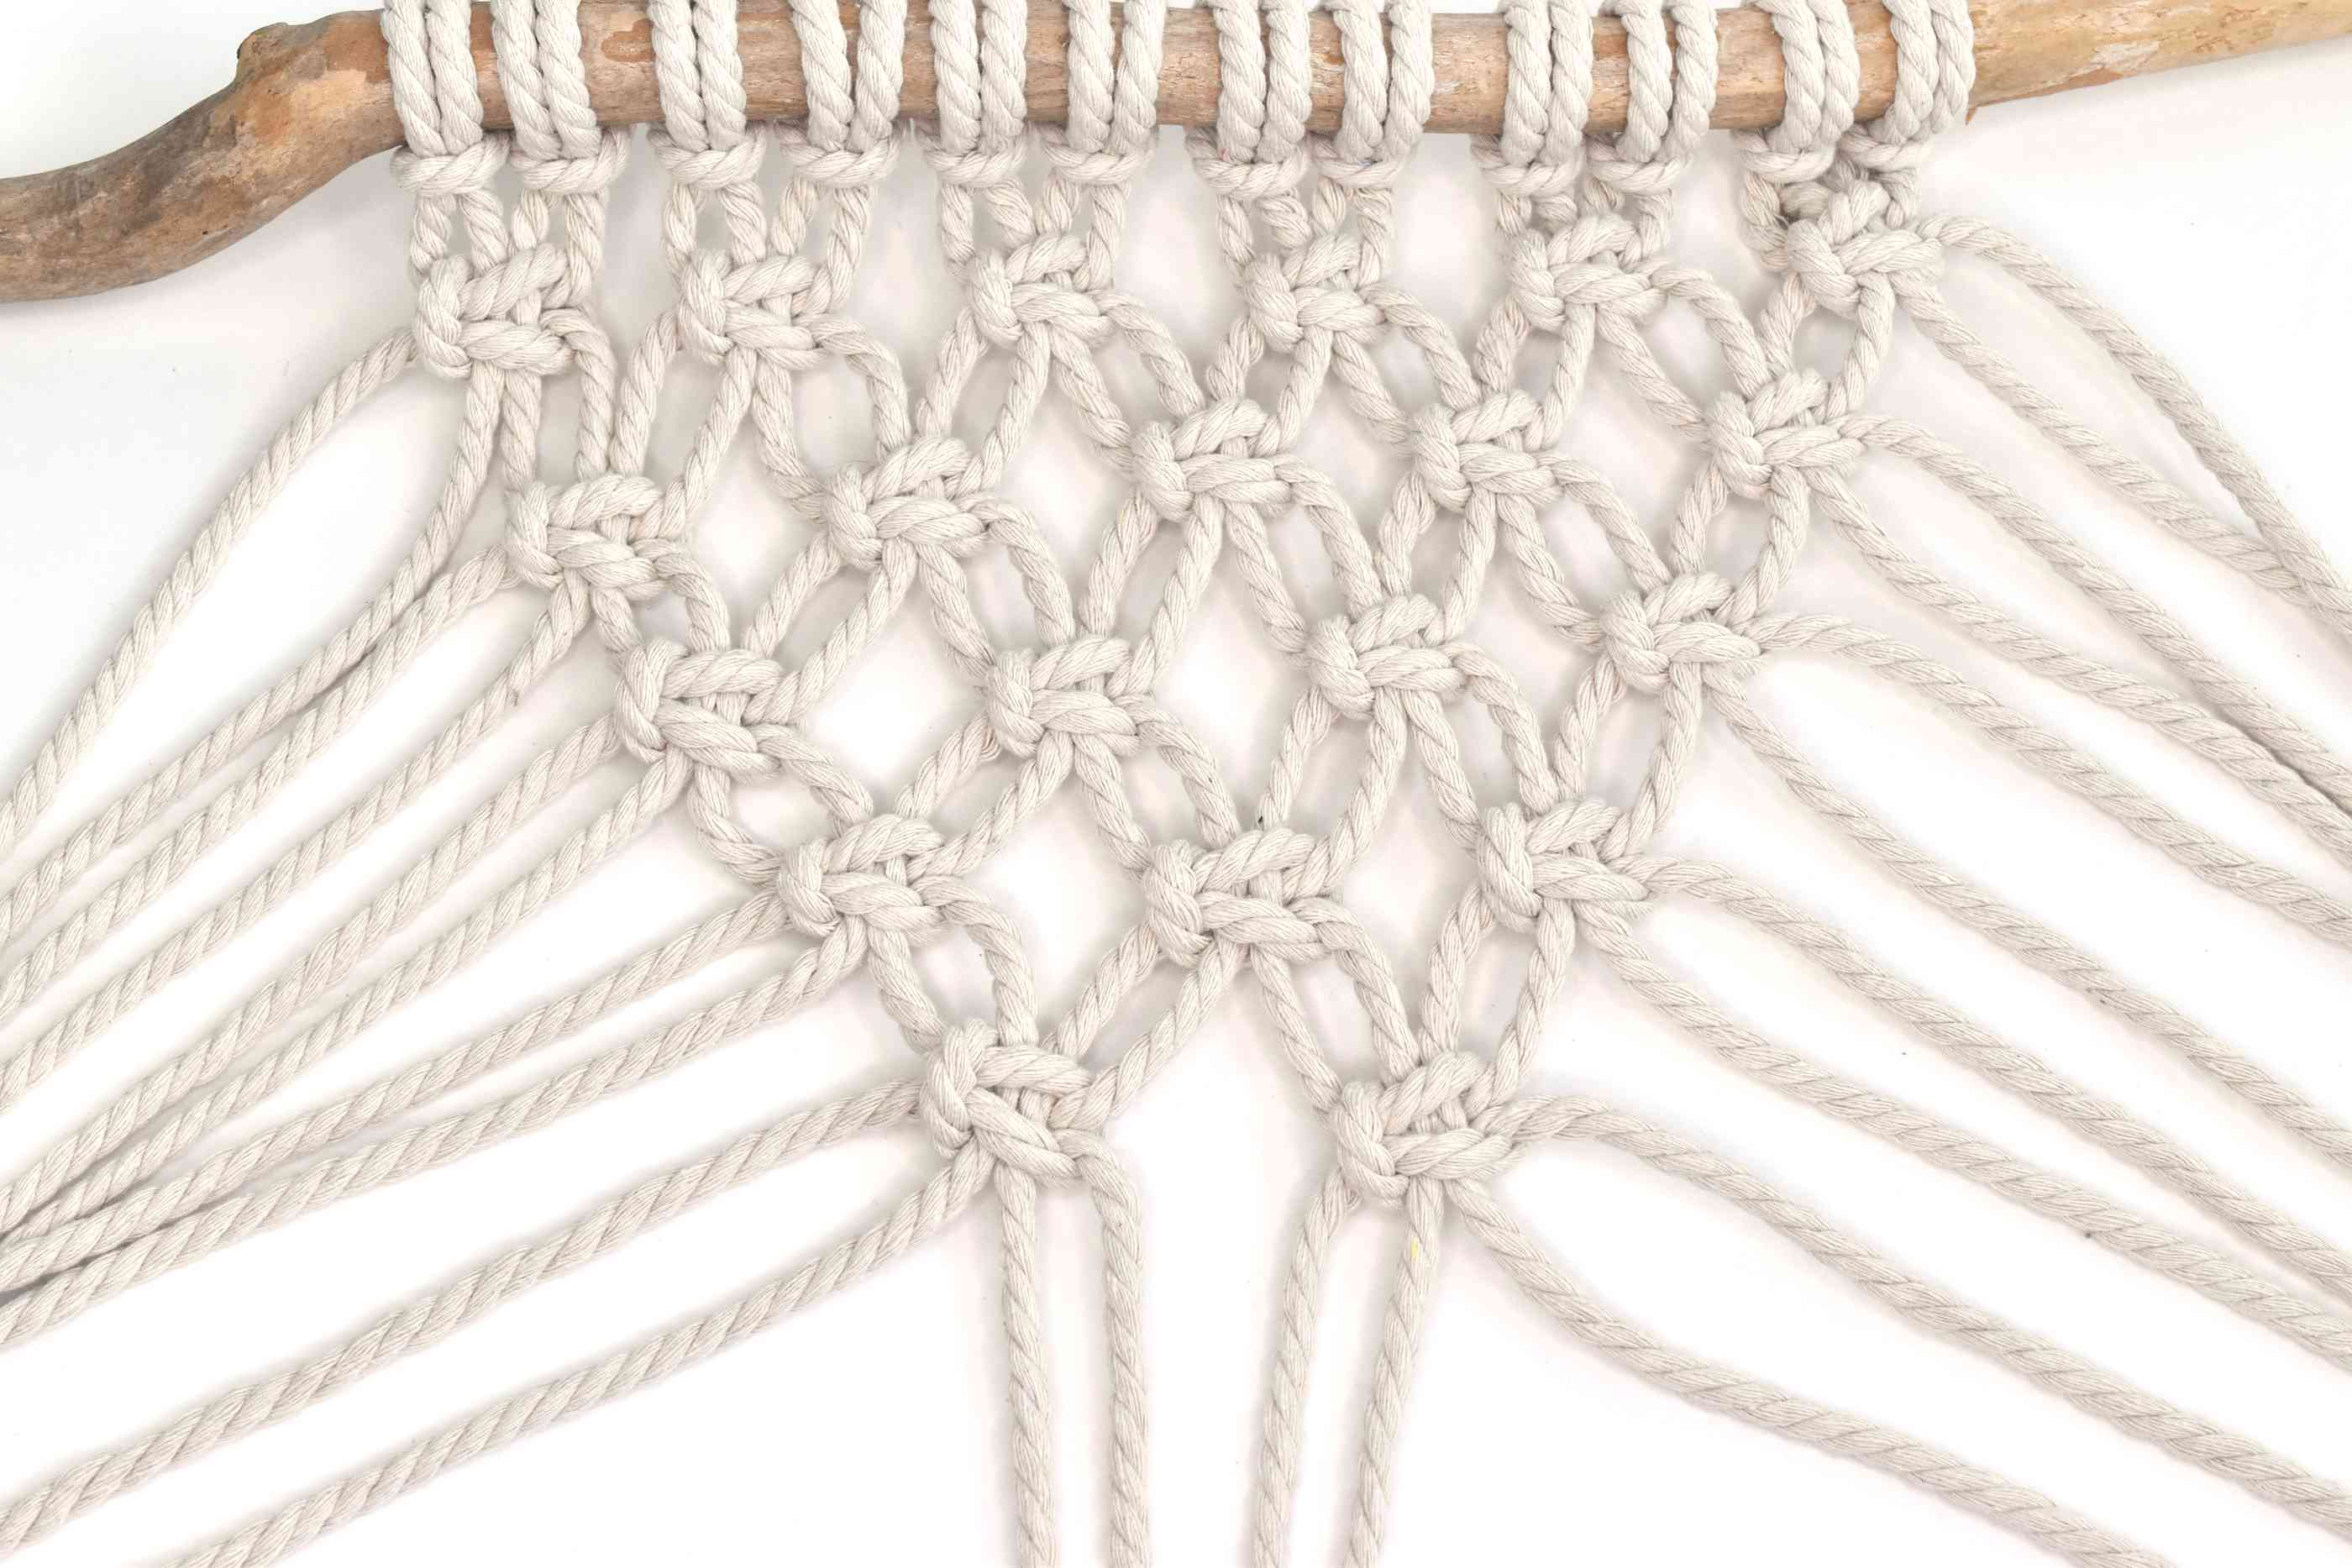 Add more rows of knots until you reach the center point